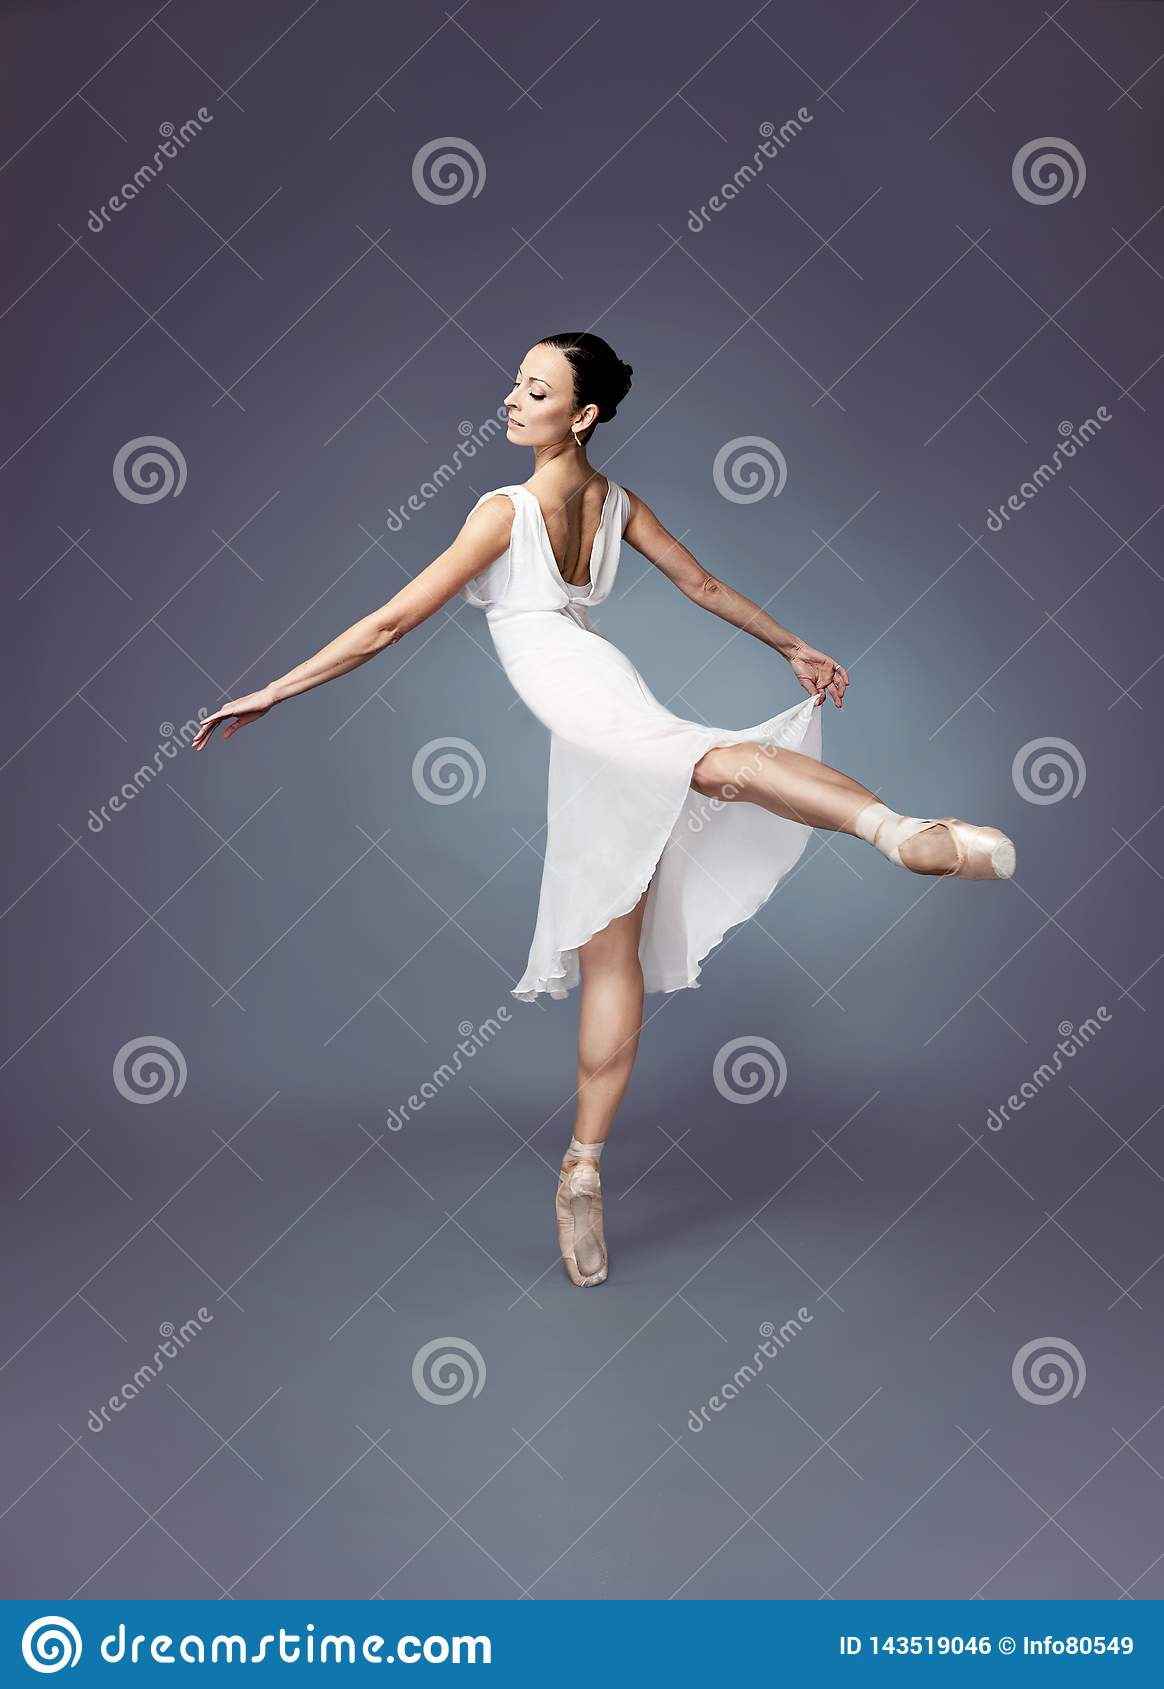 Ballet dancer-Ballerina on point shoes with a white dress